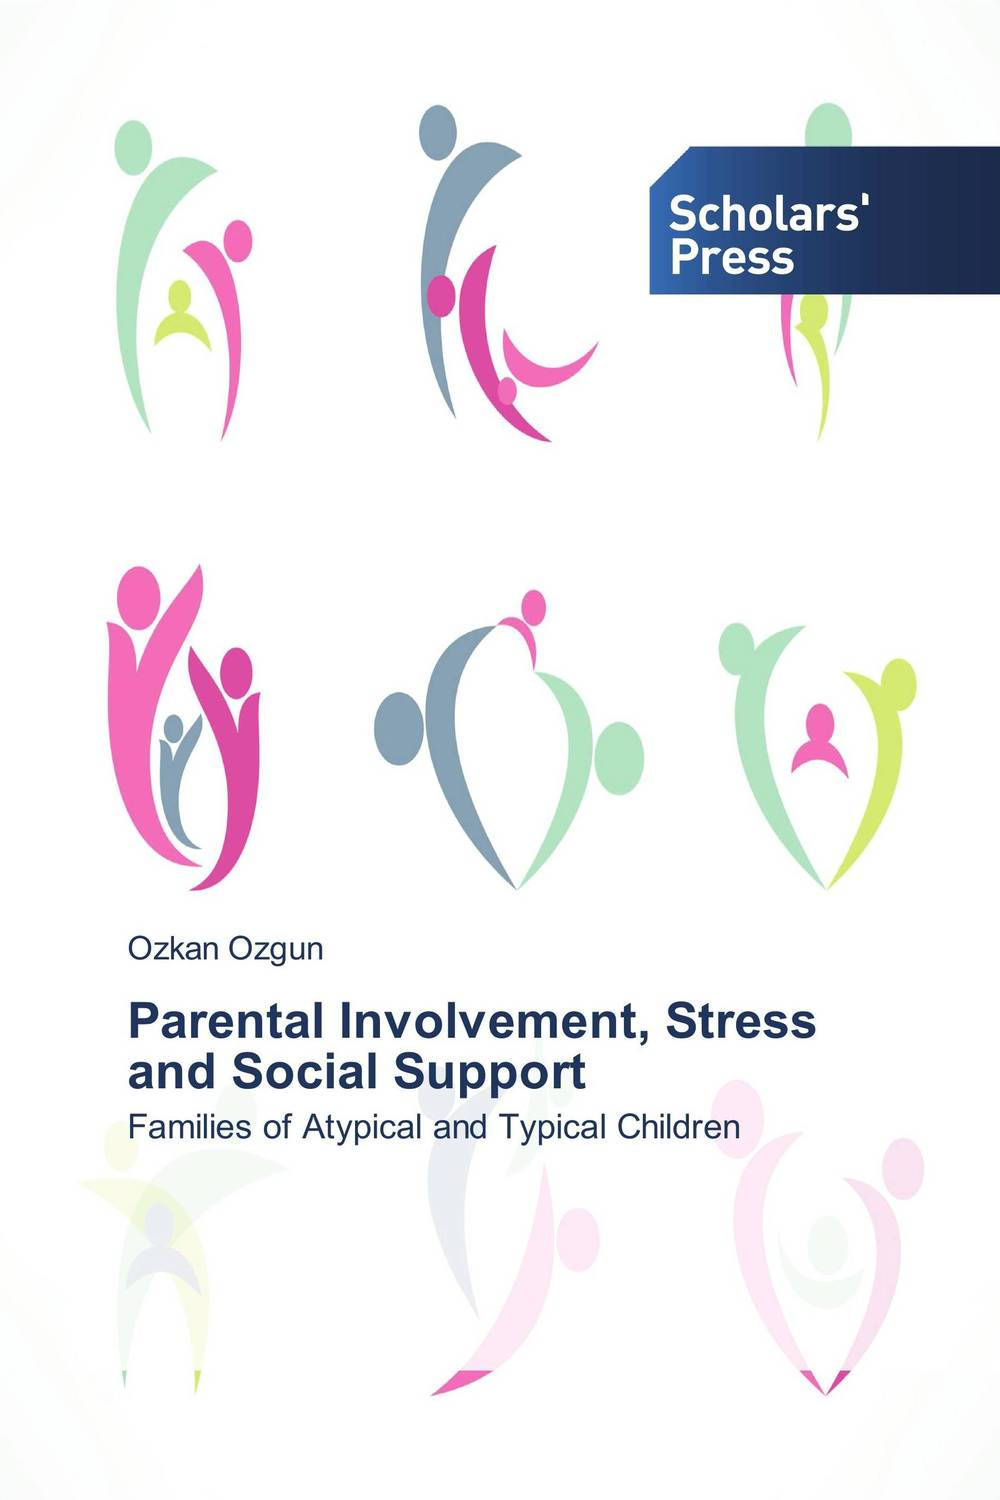 Parental Involvement, Stress and Social Support filipino alcoholic fathers and their adolescent children